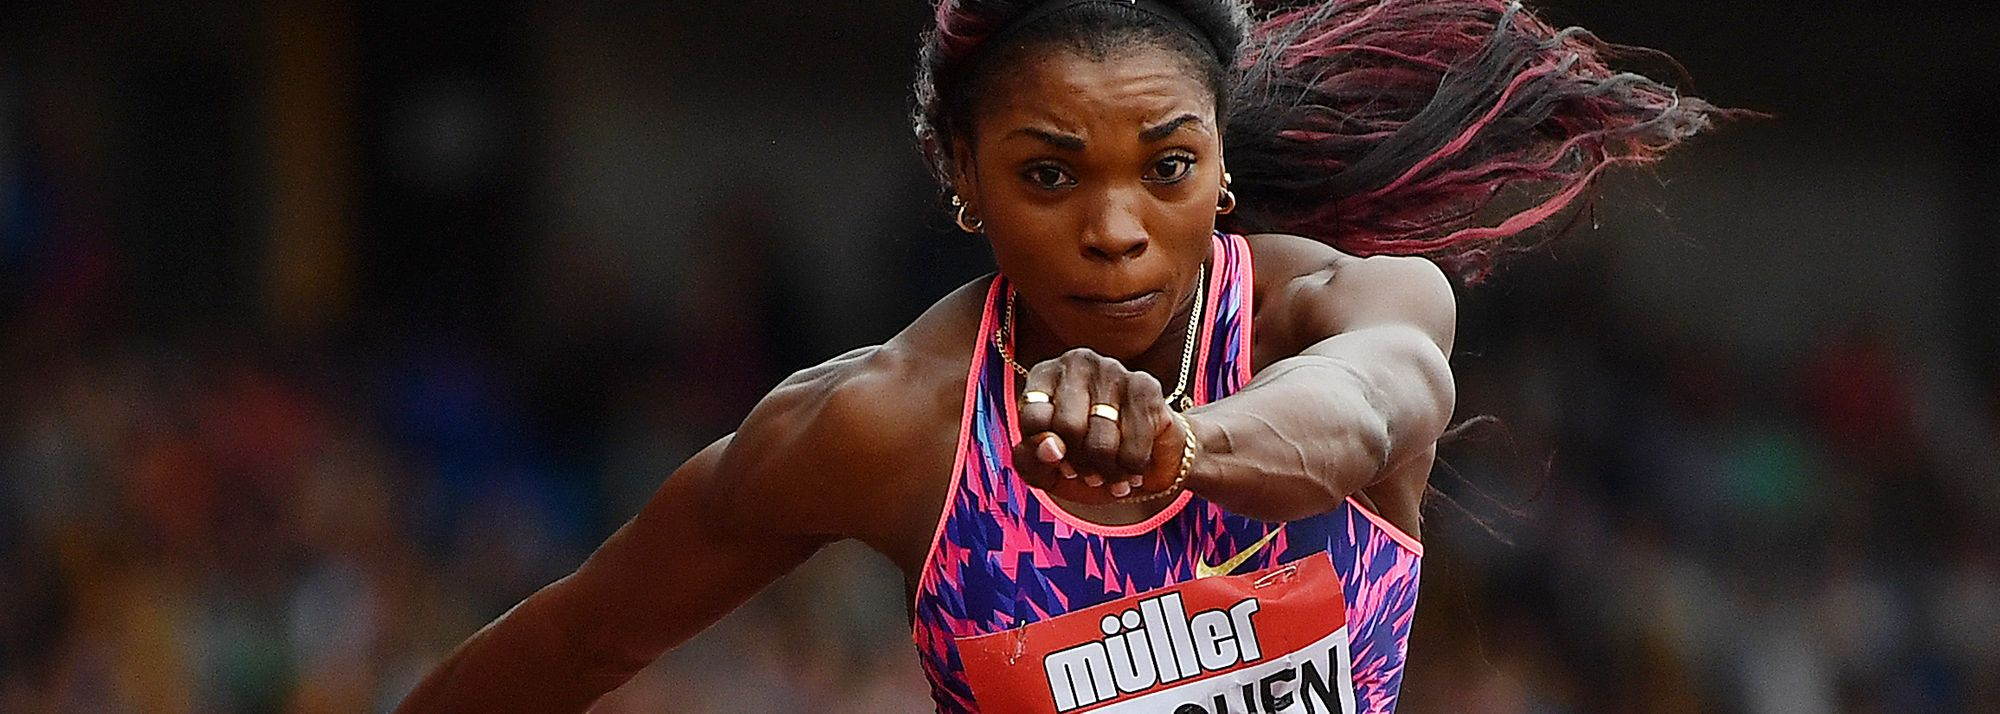 Head to the Wanda Diamond League website to see the full line-up